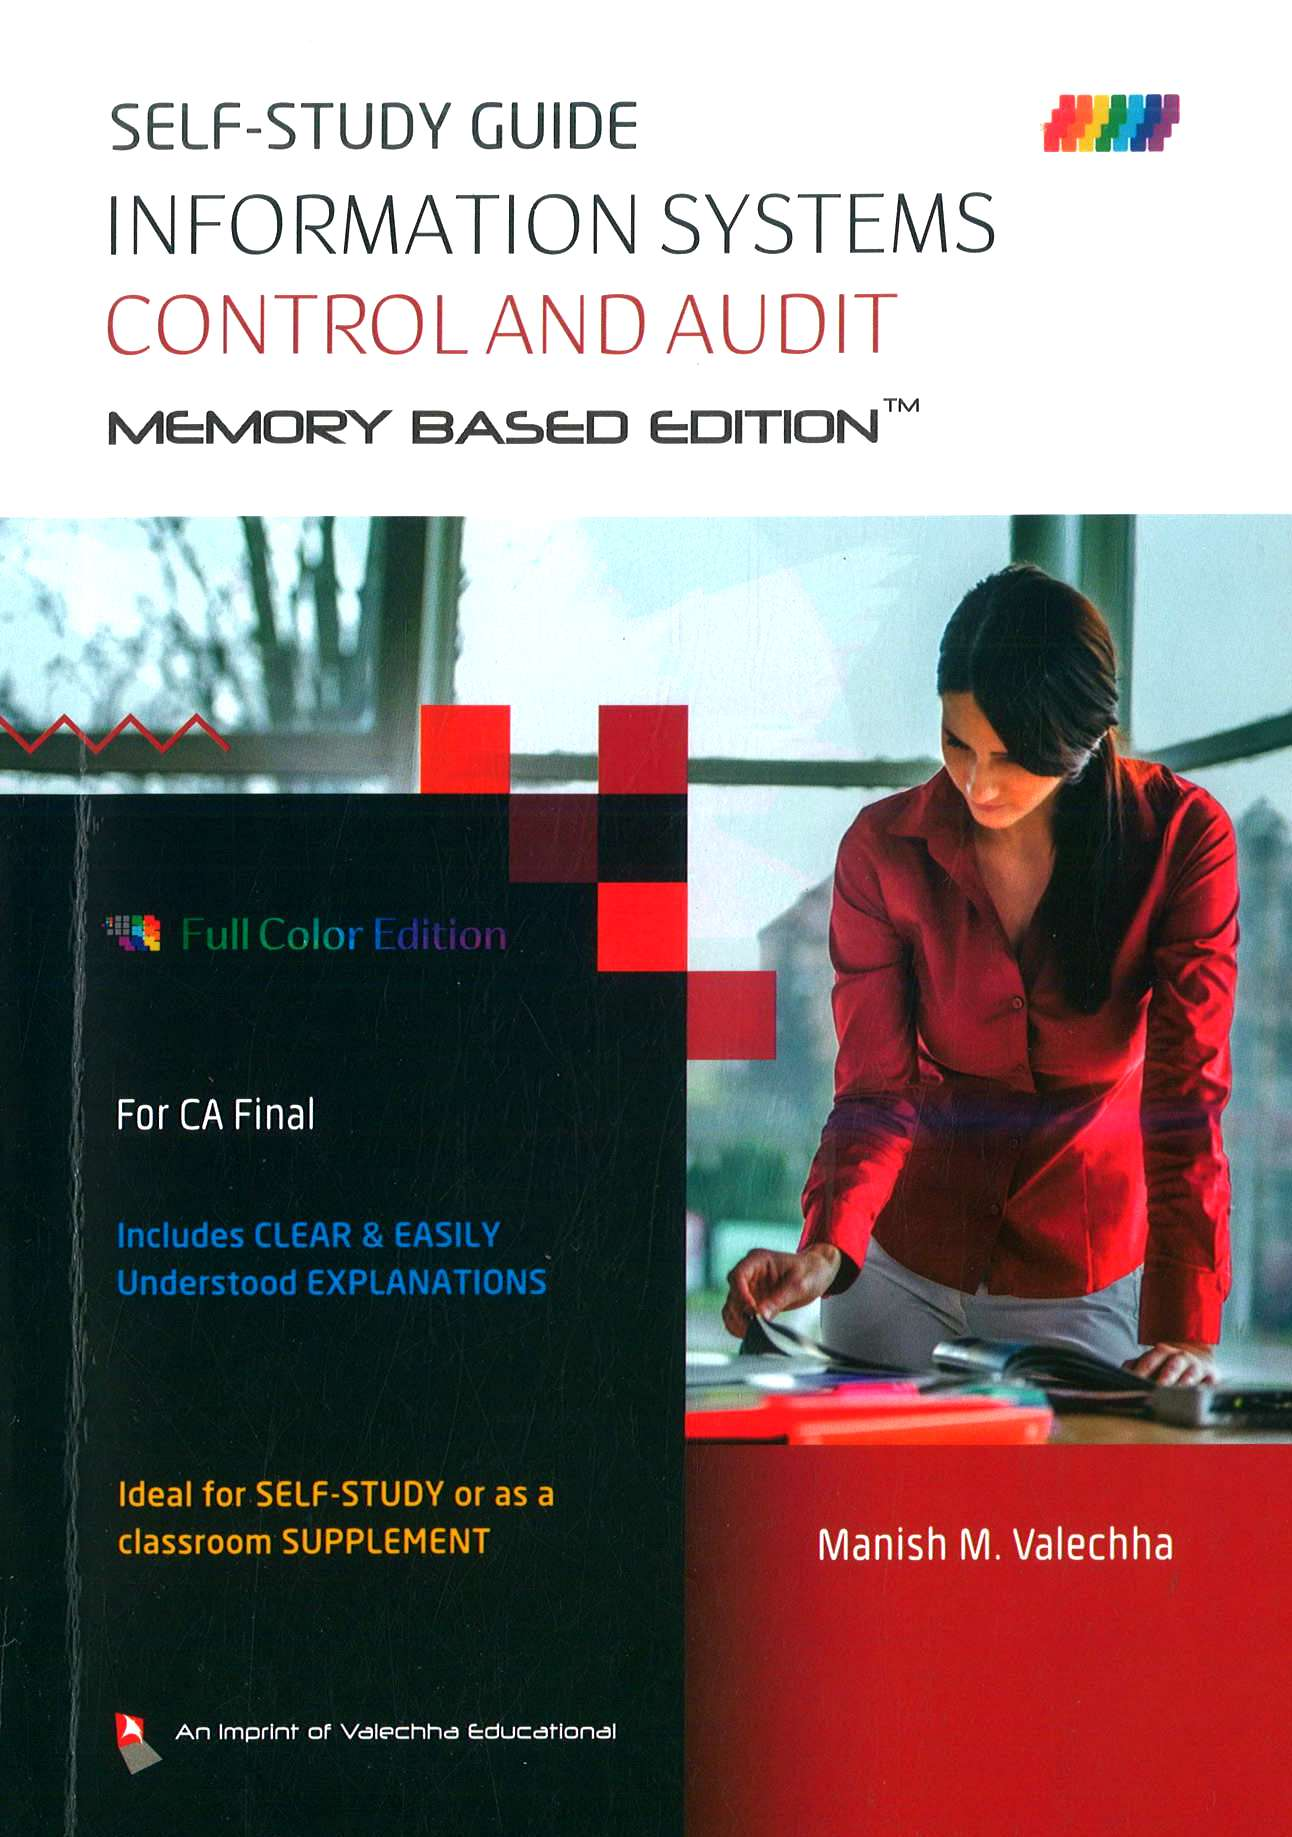 Valechha Educational's Self-Study Guide On Information Systems Control And Audit (ISCA) Old Syllabus for CA Final By Manish Valechha Applicable for May 2018 Exam